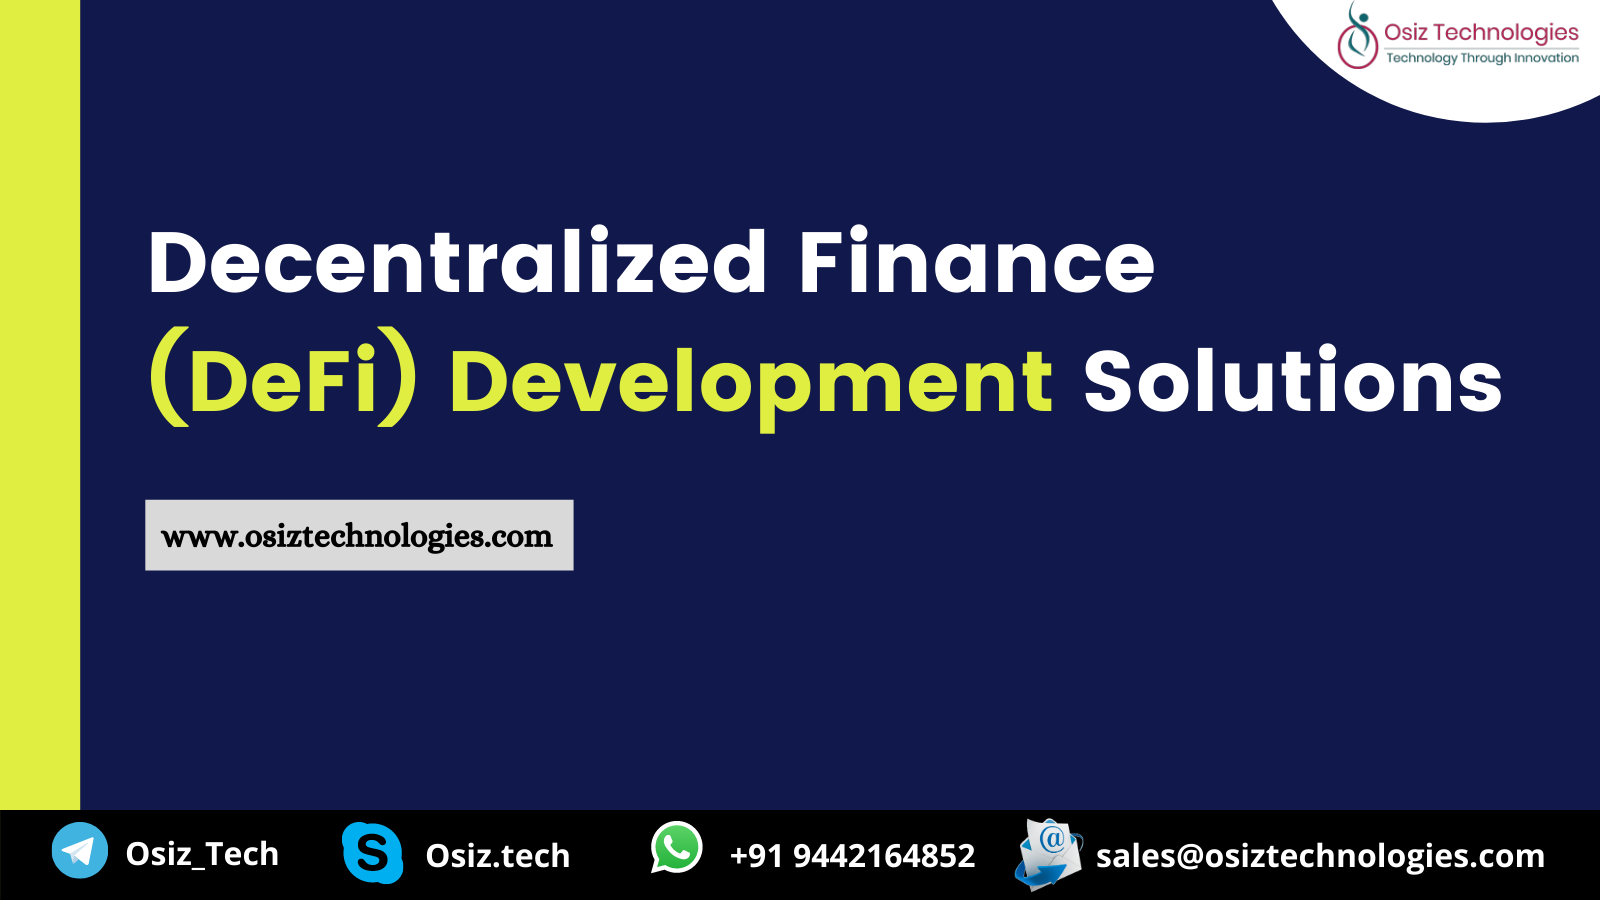 Decentralized Finance (Defi) Development Solutions addressing the challenges faced by various industries like Bank, healthcare, insurance, and education